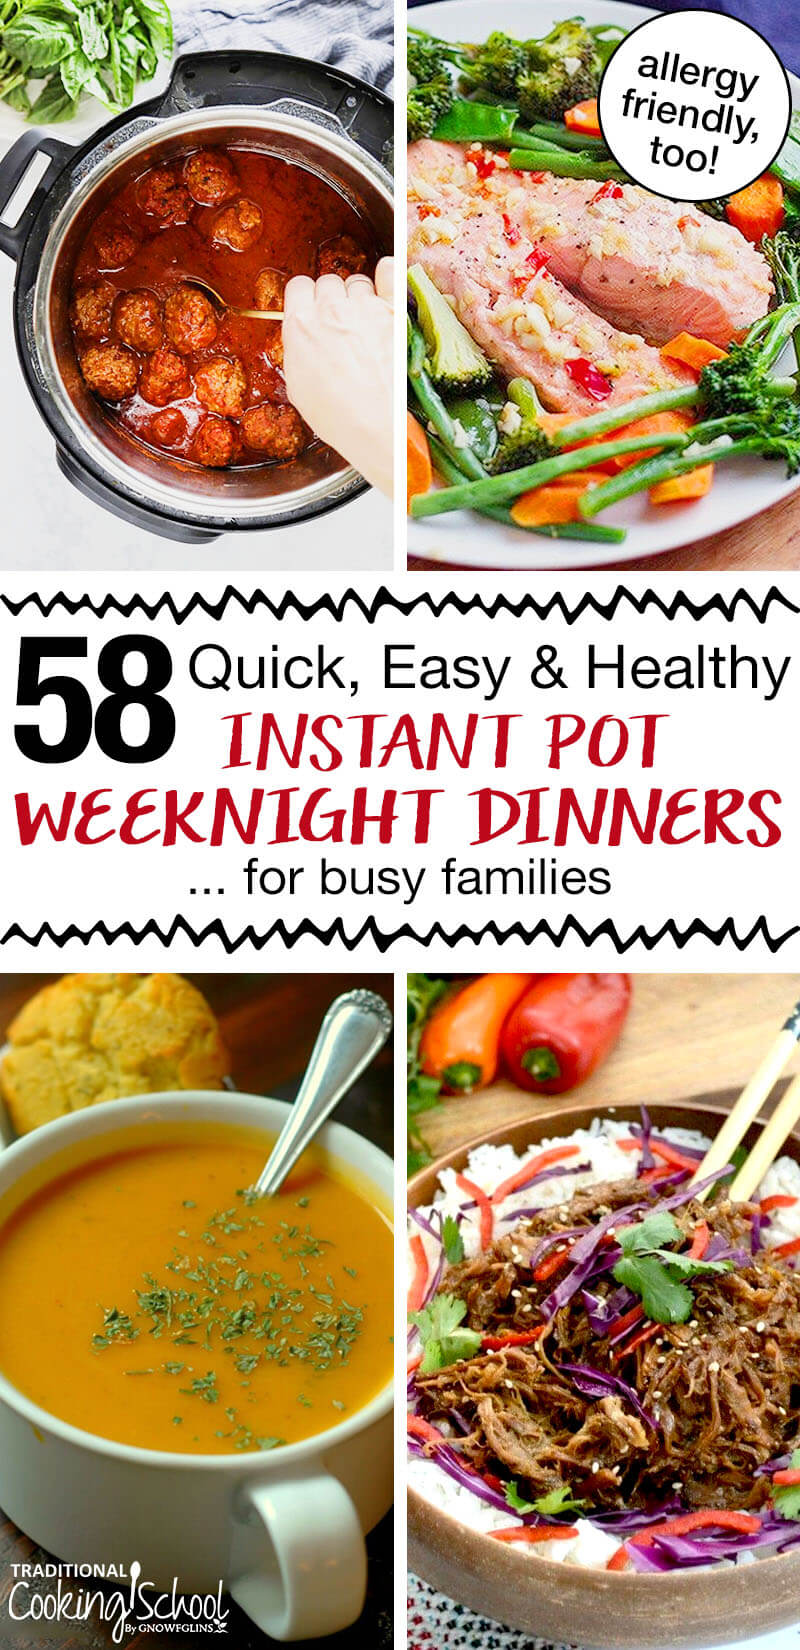 "photo collage of easy pressure cooker dinners, including soups and meatballs, with text overlay: ""58 Quick, Easy, & Healthy Instant Pot Weeknight Dinners ... for busy families"""